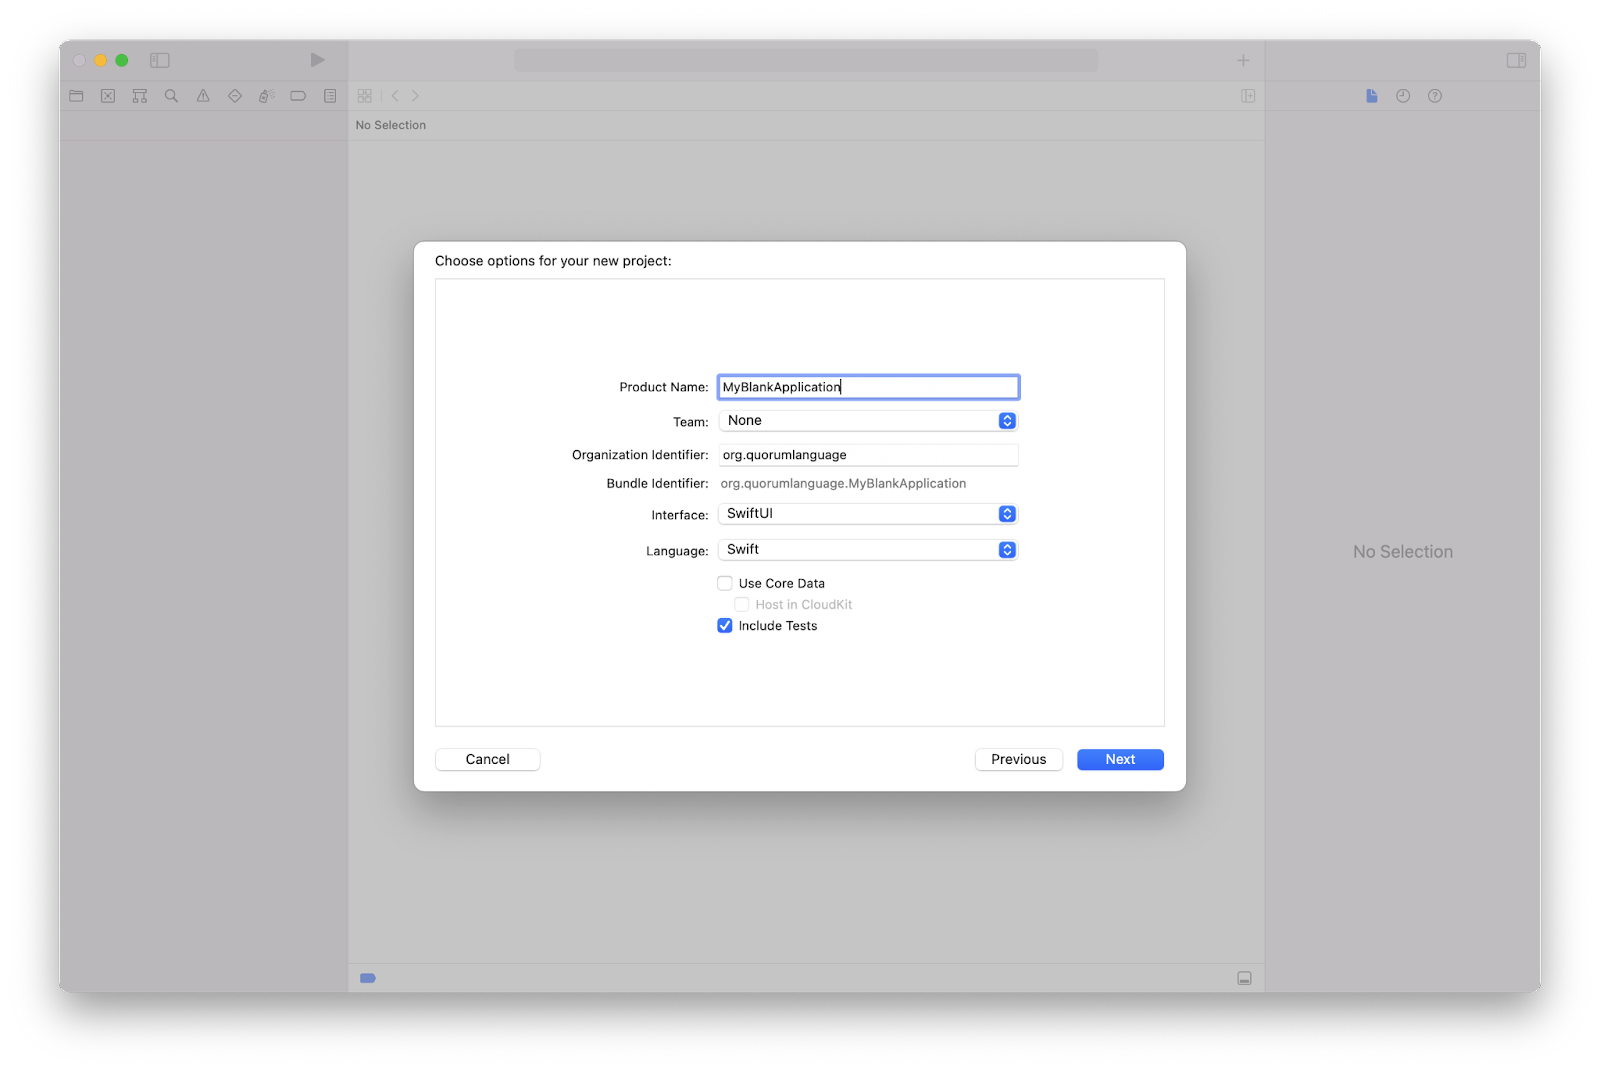 The Xcode Project Options